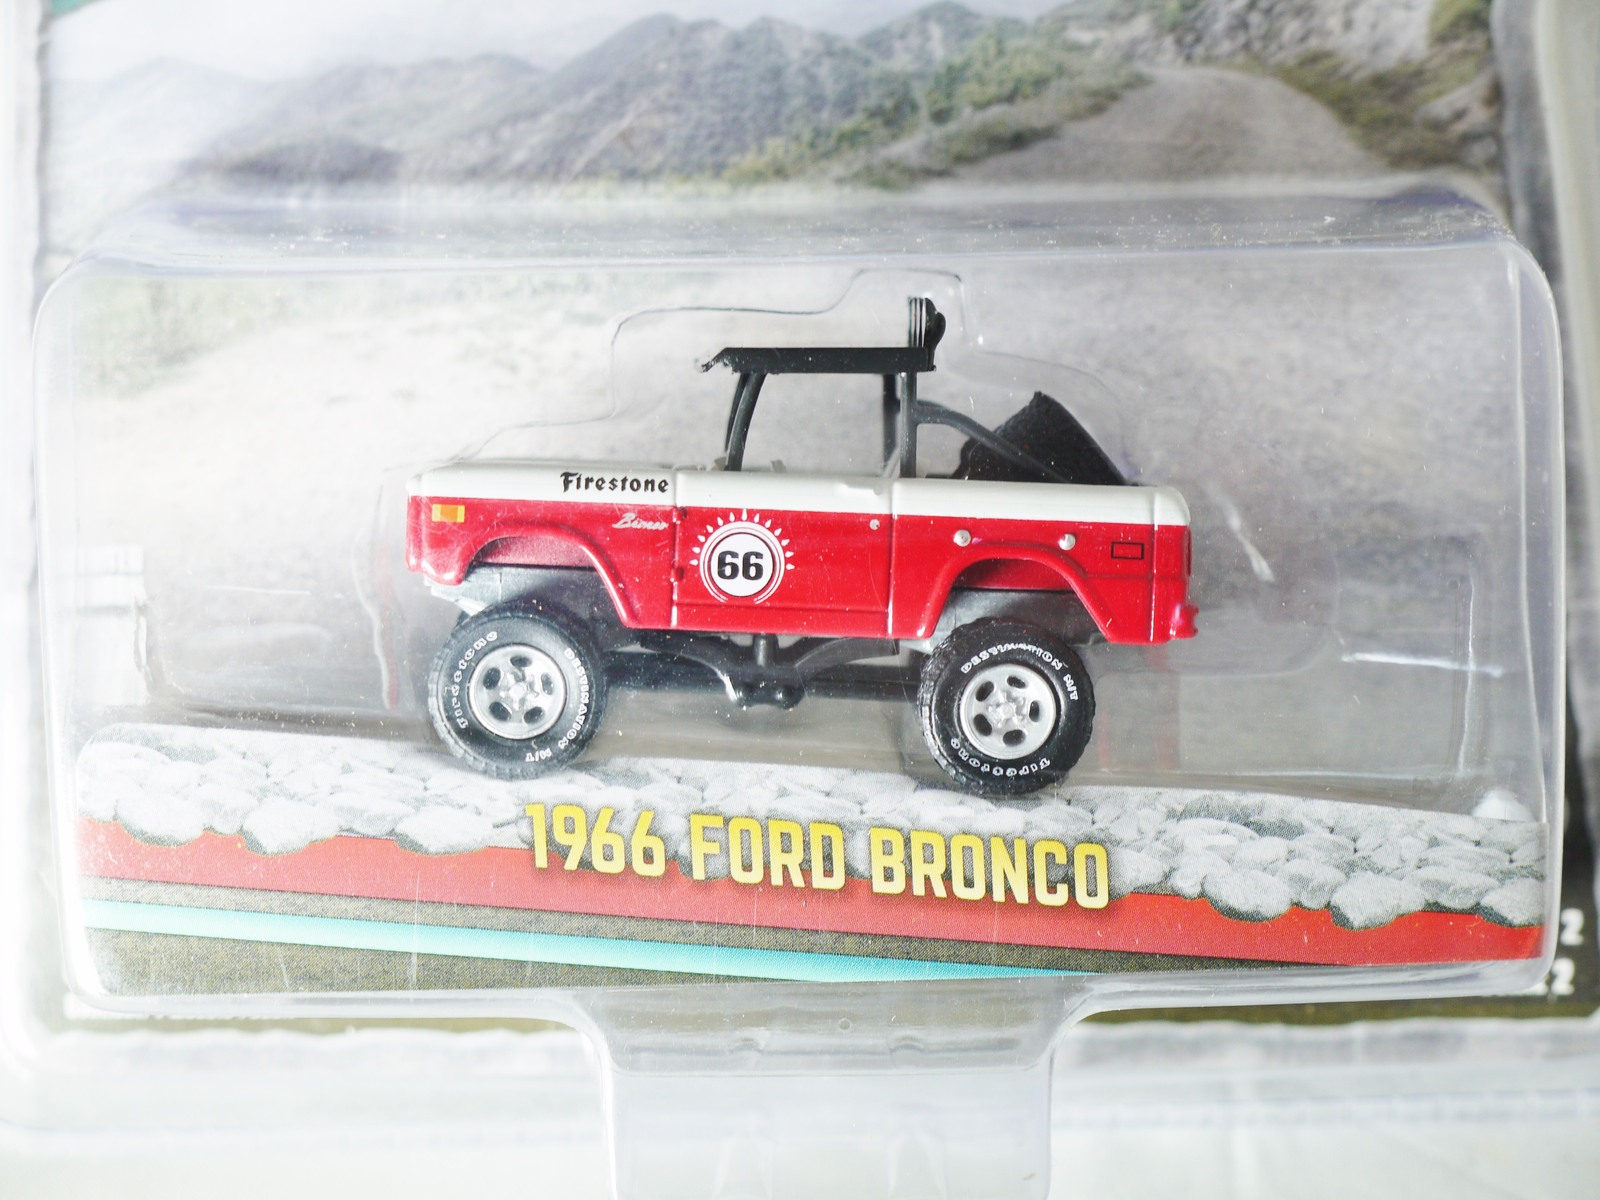 GREENLIGHT 1/64 ALL-TERRAIN Series 2 1966 FORD BRONCO Die-cast Figure Red